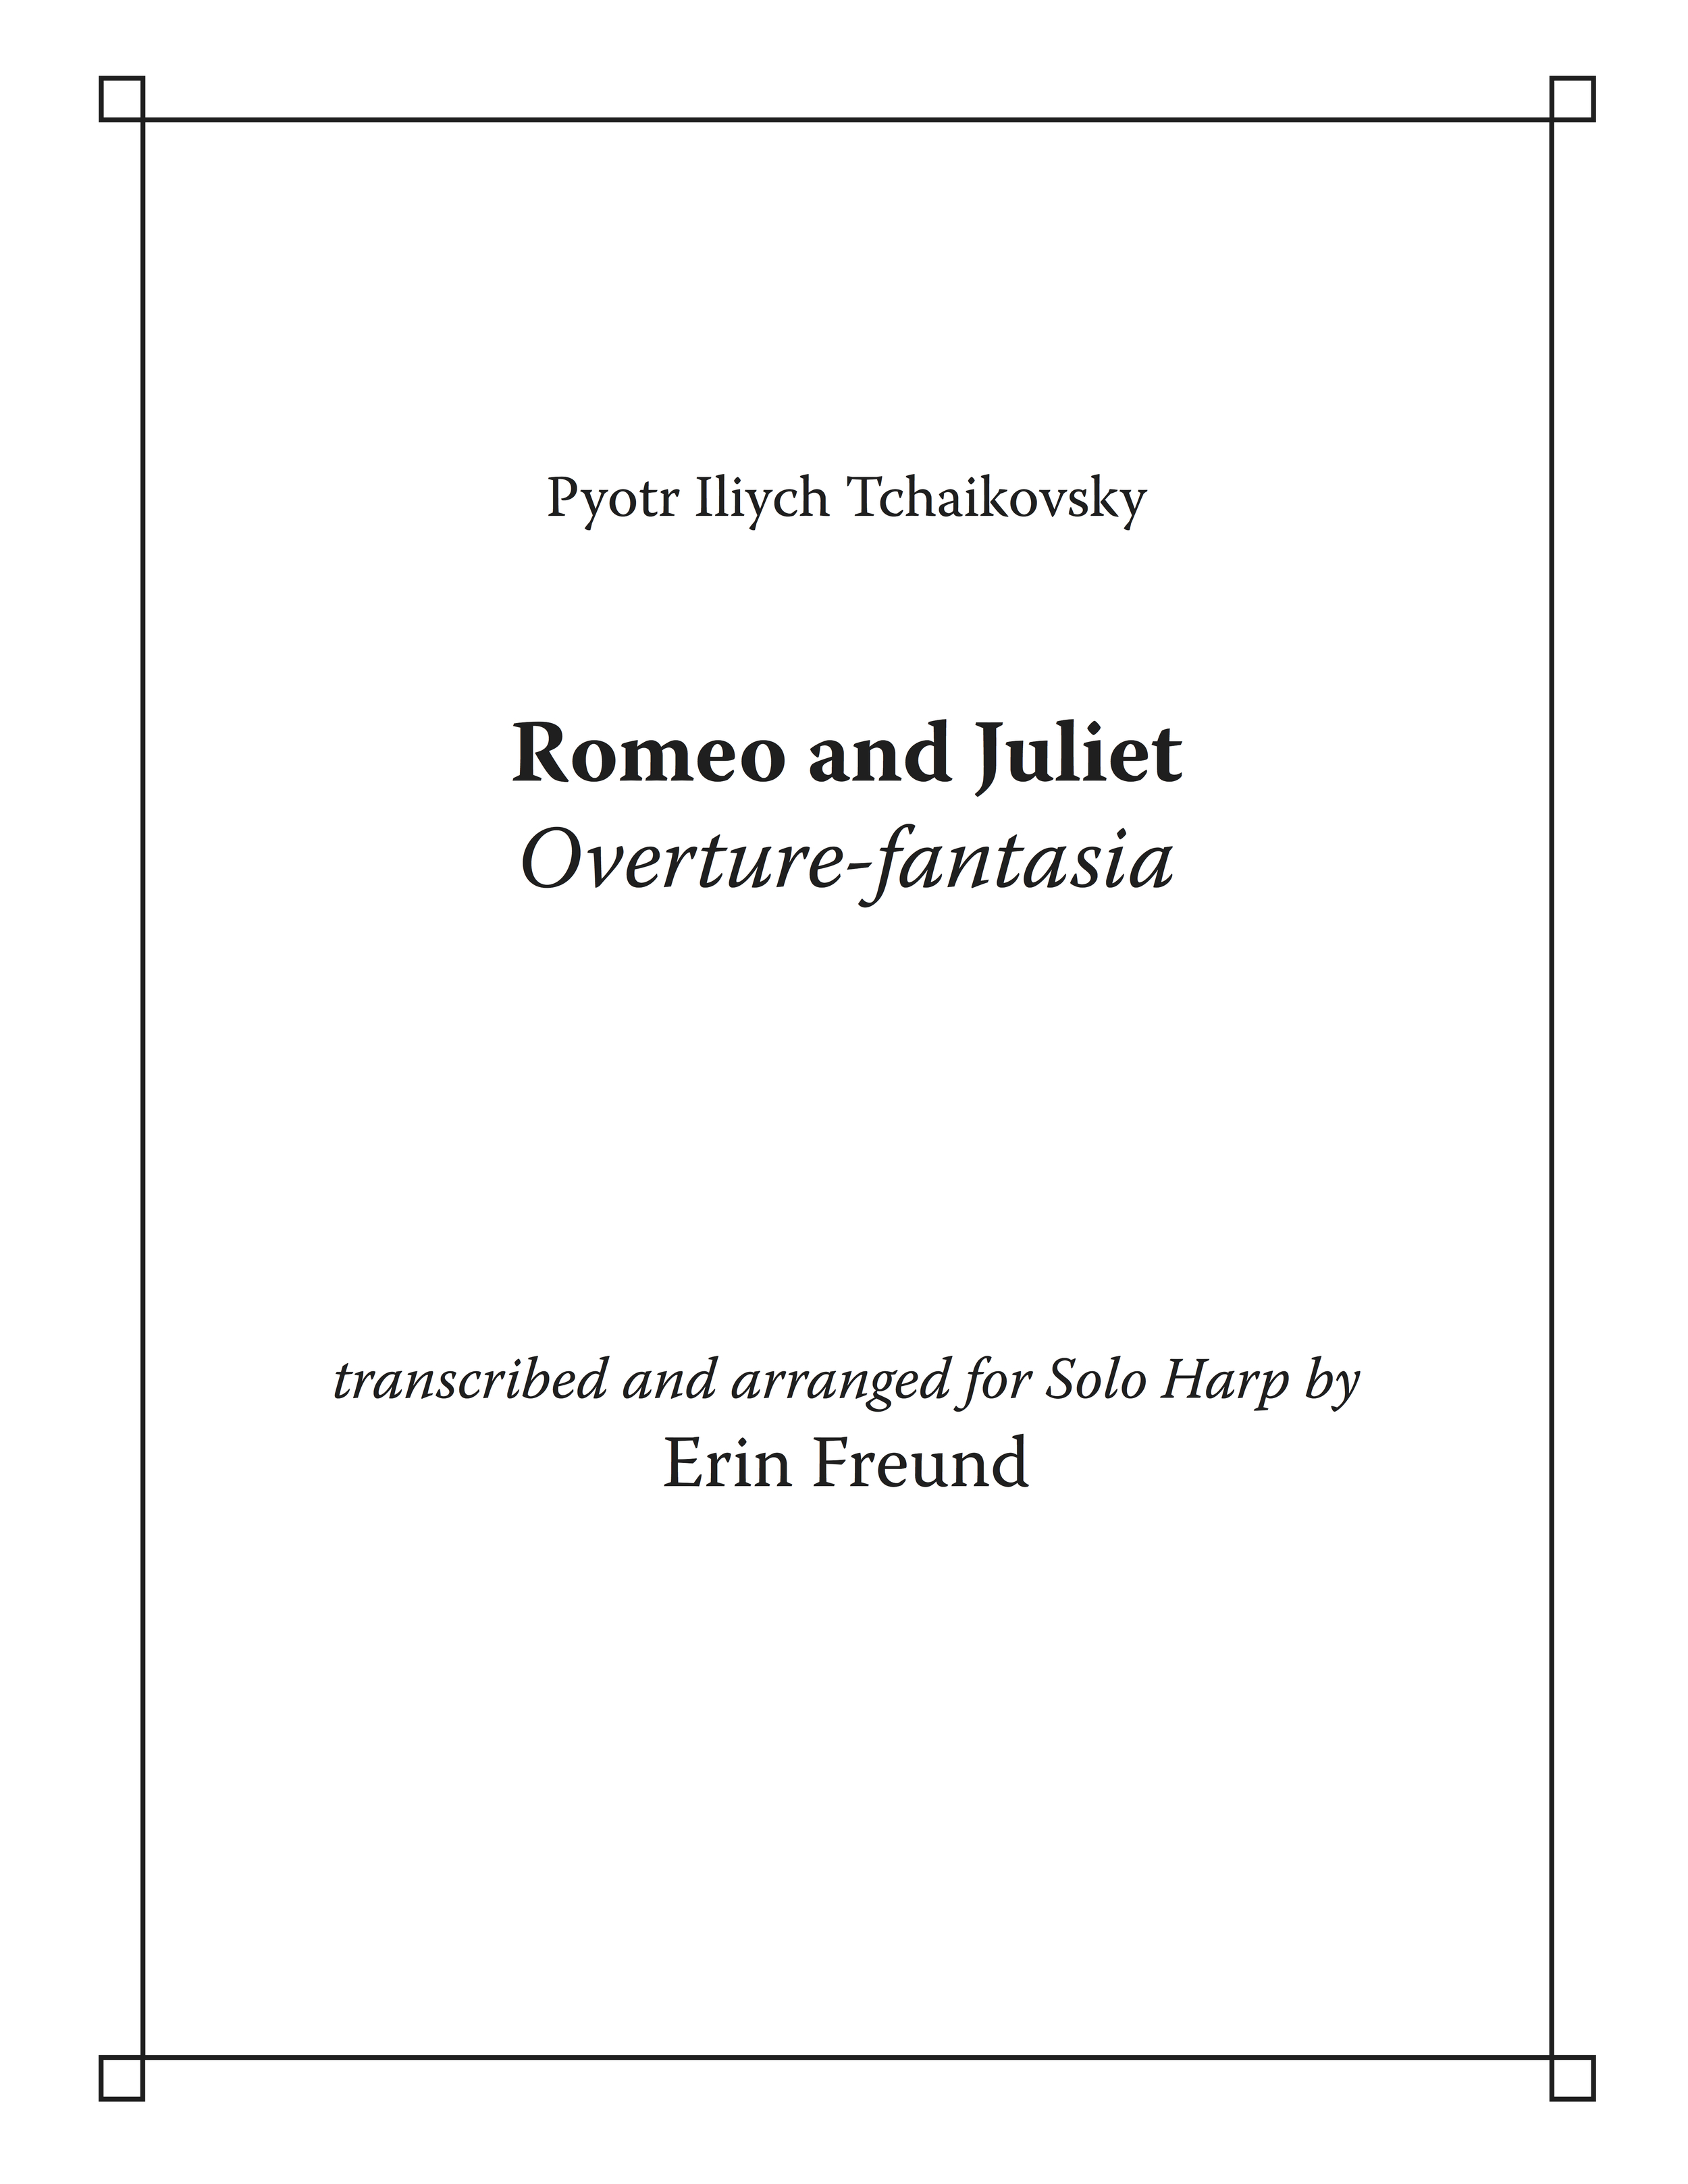 romeo and julietpage1.jpg